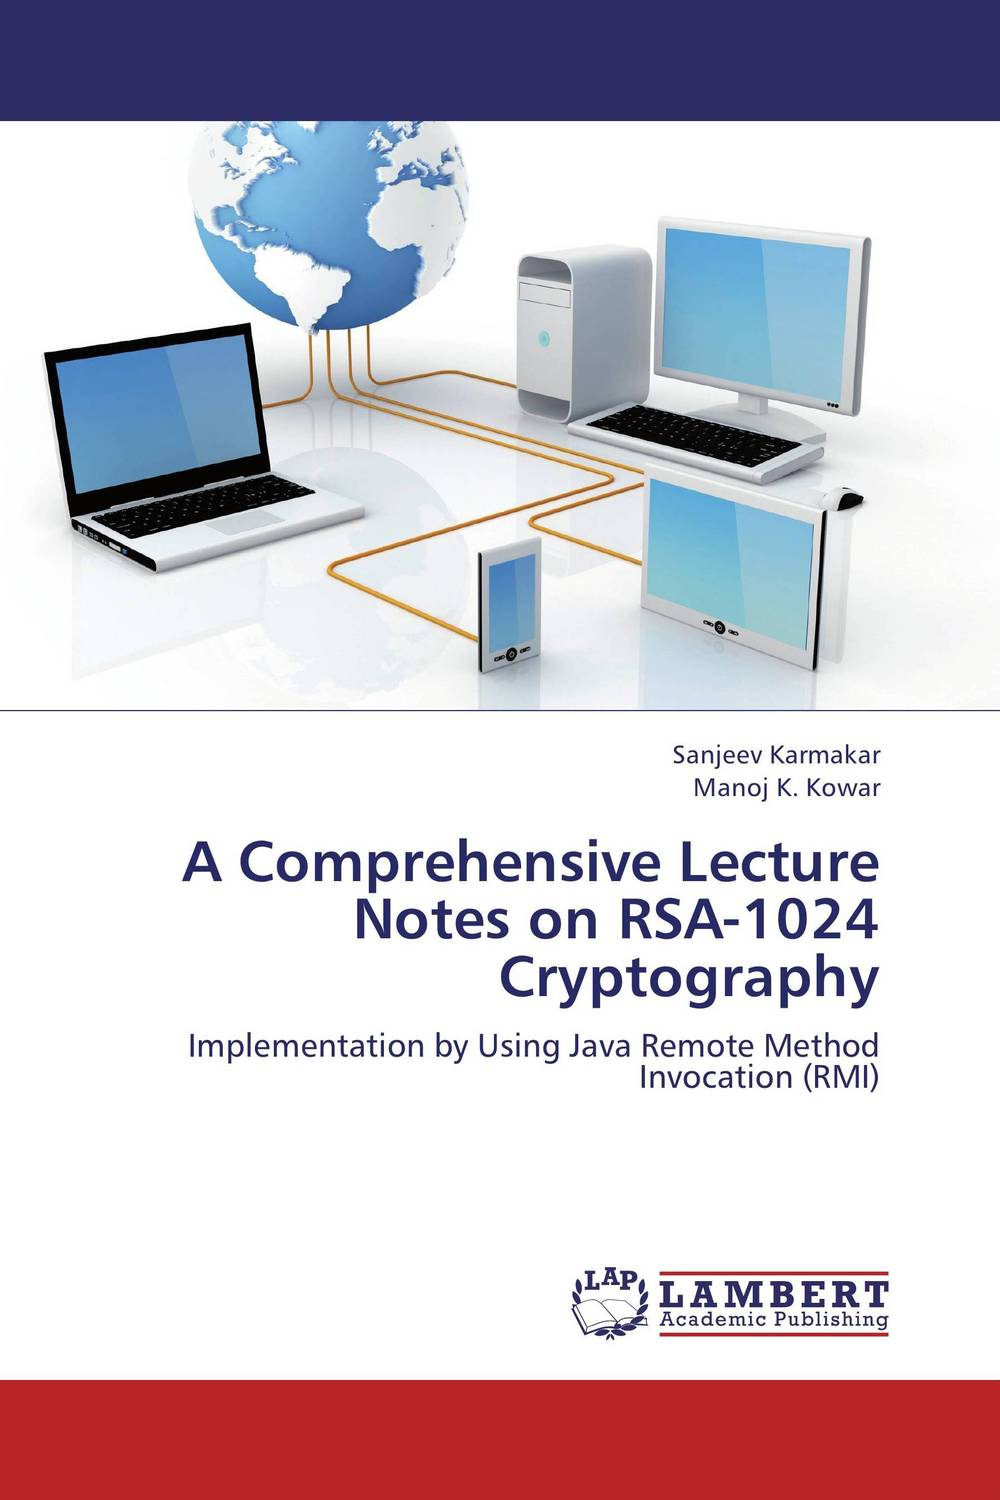 A Comprehensive Lecture Notes on RSA-1024 Cryptography simulation of atm using elliptic curve cryptography in matlab